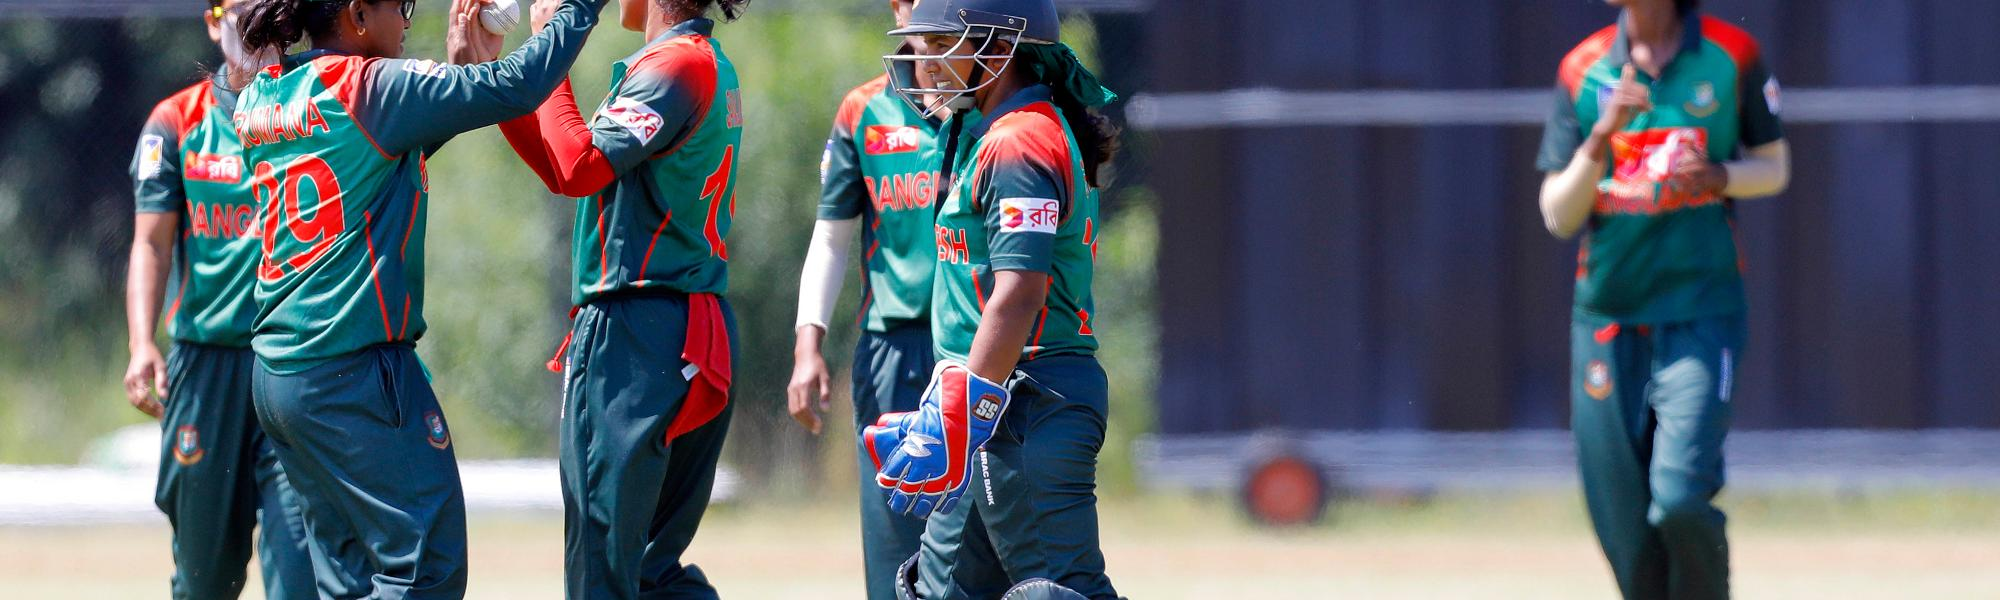 Bangladesh Players celebrate a wicket during the Practice Match, 5th July 2018.